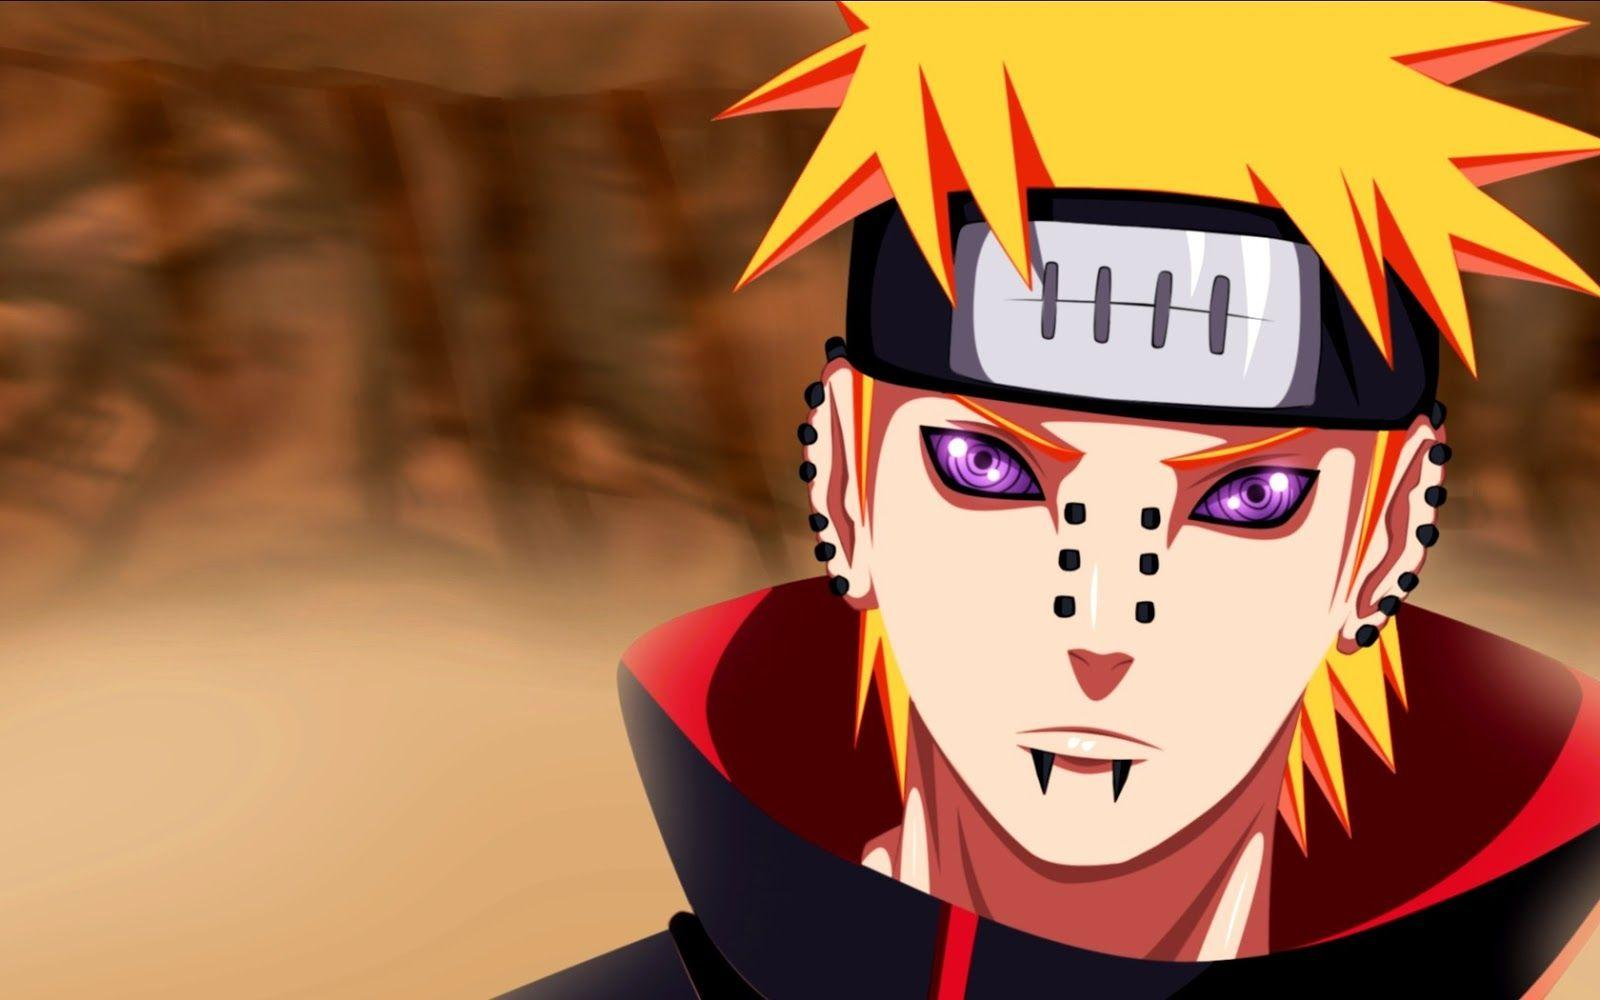 naruto nagato pain hd wallpaper and download free wallpaper